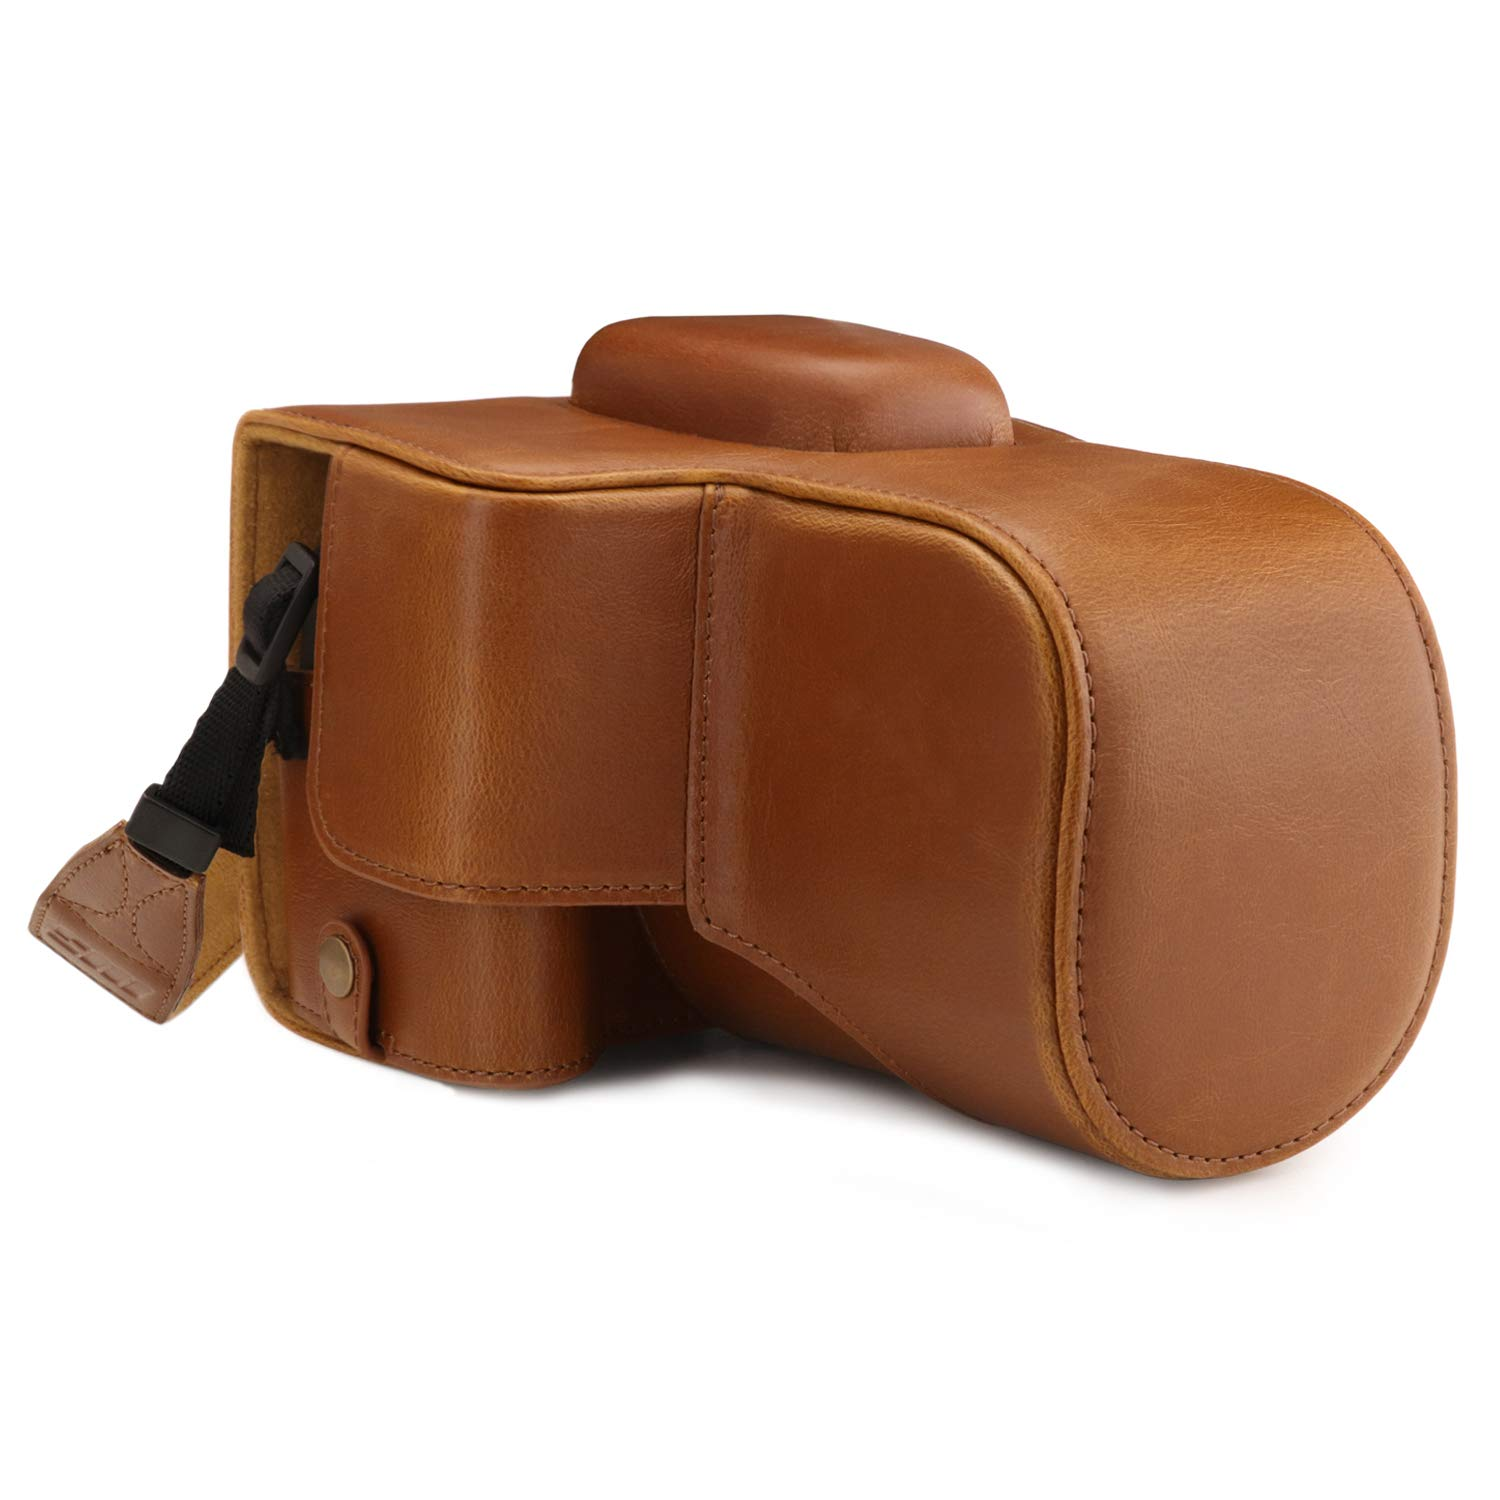 MegaGear MG1609 Ever Ready Leather Camera Case compatible with Canon EOS Rebel T7 (18-55mm), 2000D (18-55mm) - Light Brown by MegaGear